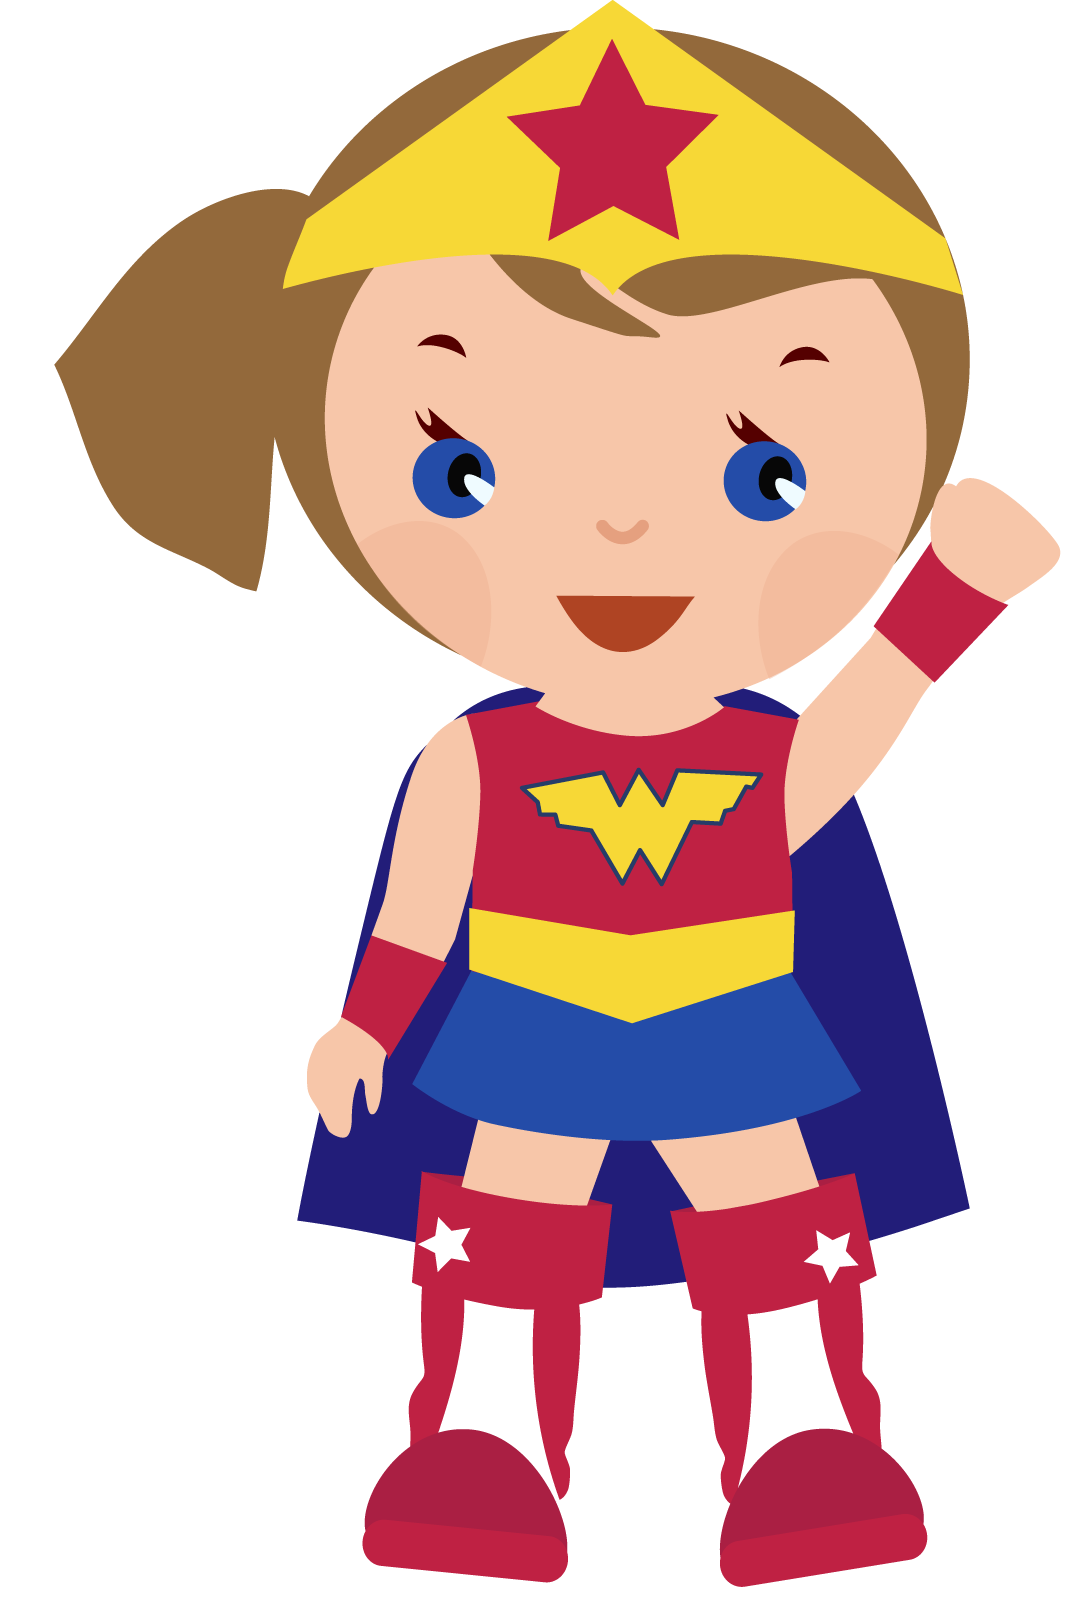 Kid Superhero Clipart - clipartall ...-Kid Superhero Clipart - clipartall ...-9